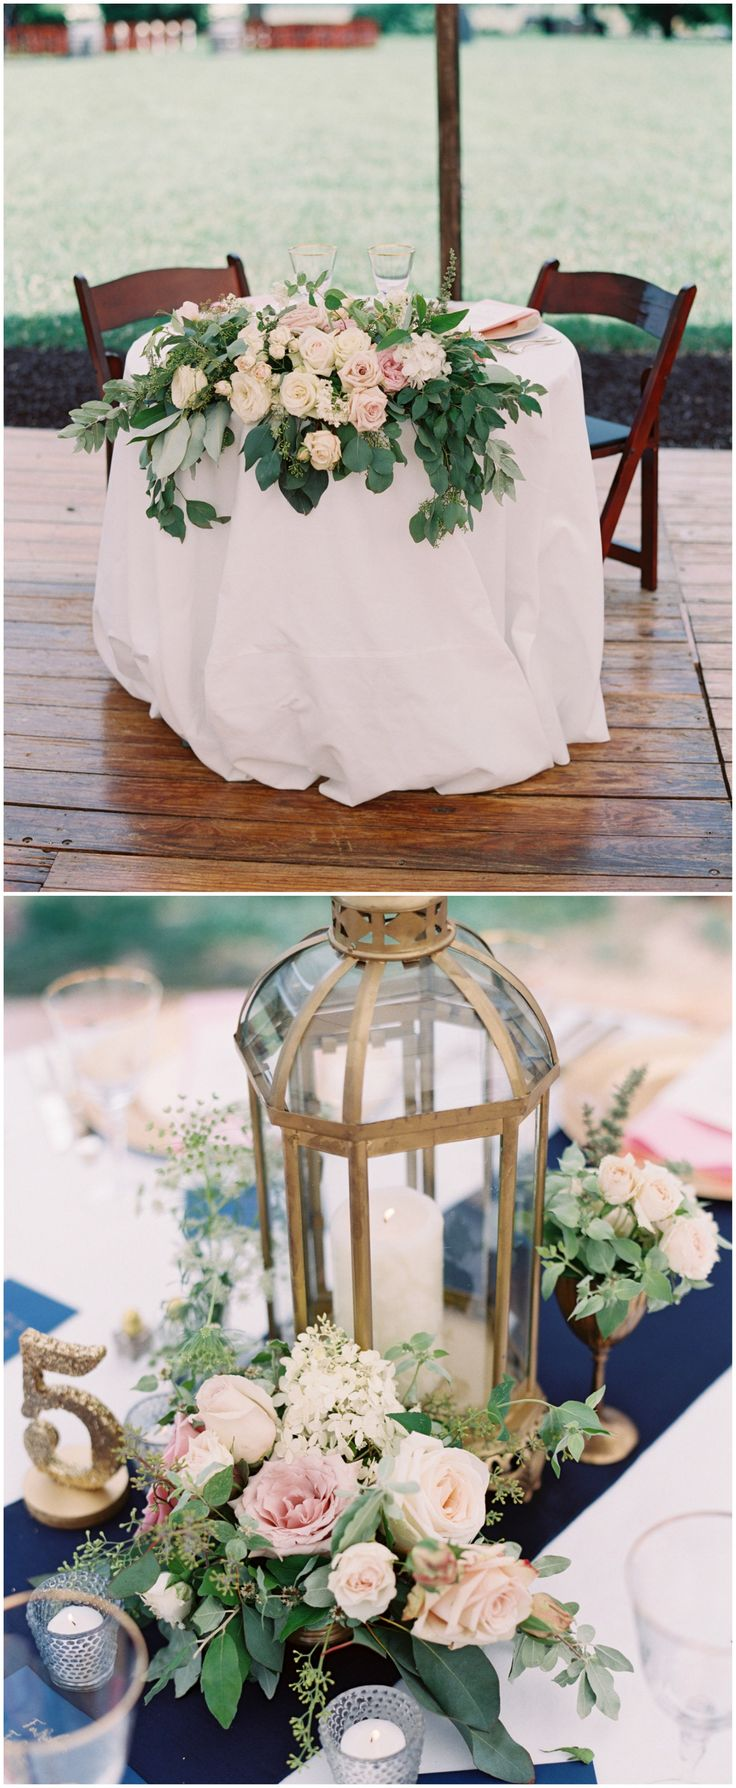 Romantic outdoor reception, cream and pink roses, shabby chic gold lanterns as centerpieces, navy blue linens // Adam Barnes Fine Art Photography